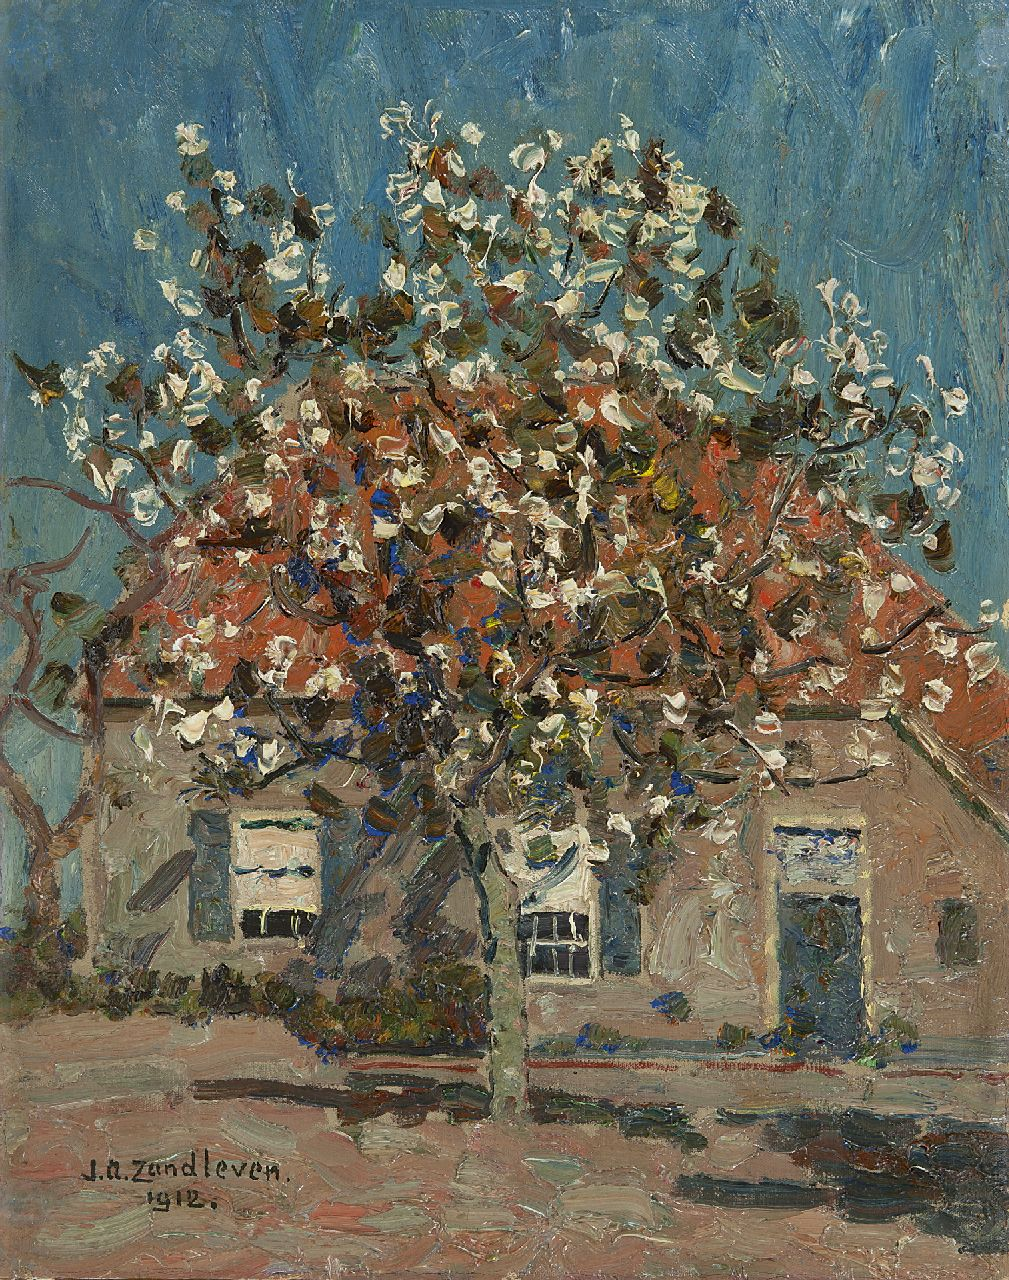 Zandleven J.A.  | Jan Adam Zandleven | Paintings offered for sale | Flowering fruit tree in front of a farm, oil on canvas laid down on panel 40.2 x 32.1 cm, signed l.l. and dated 1912